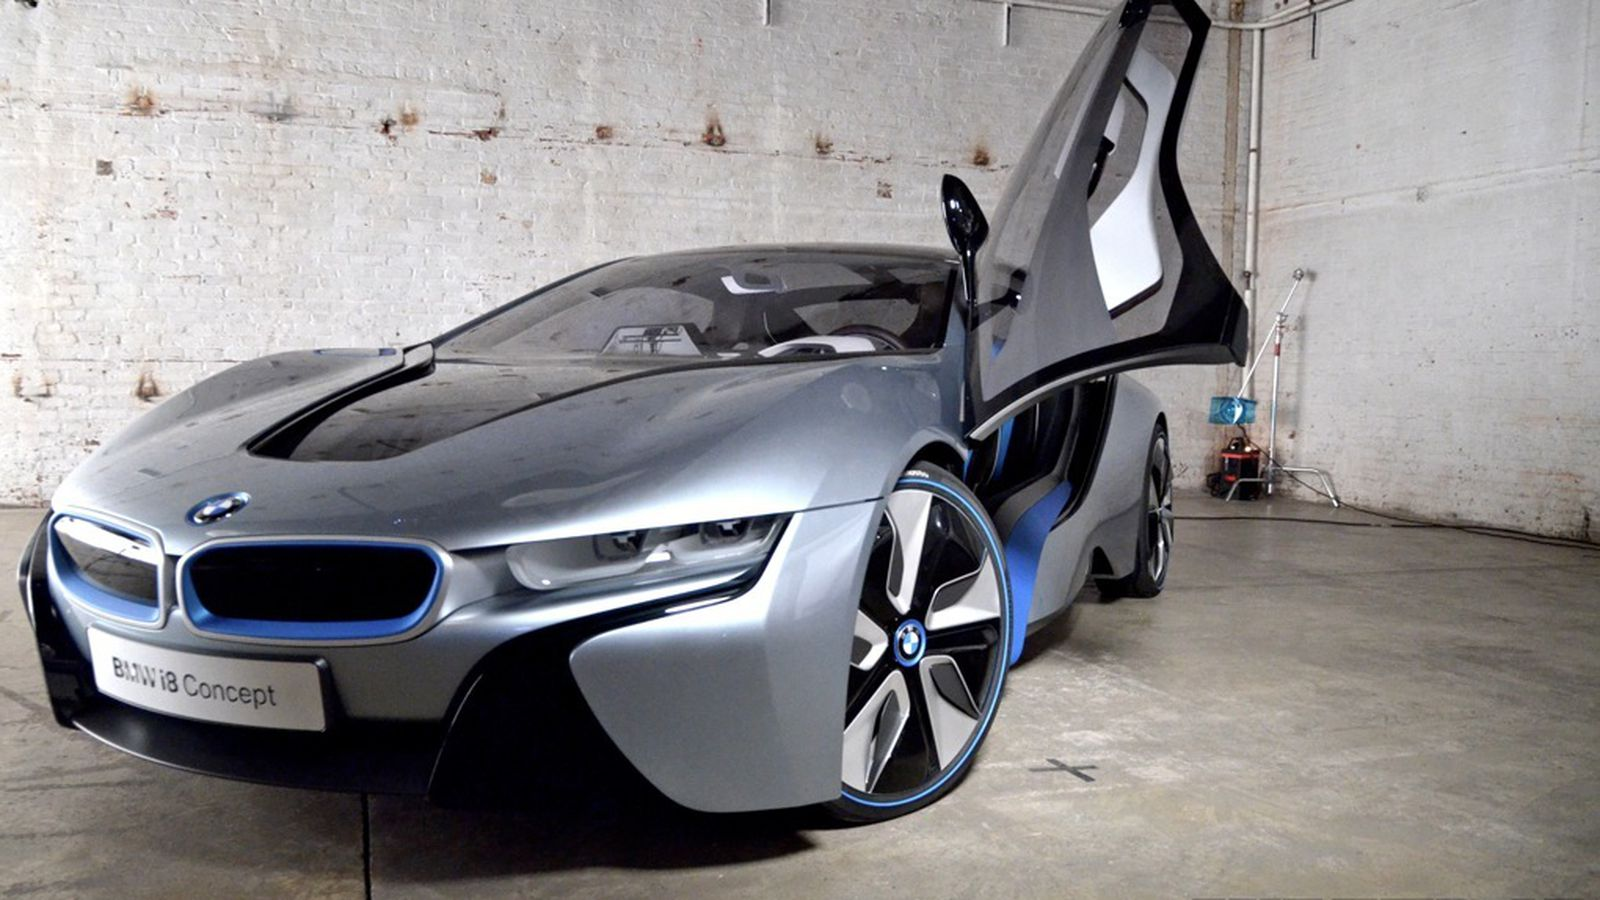 Bmw I8 Hands On The Hybrid Supercar At Rest The Verge